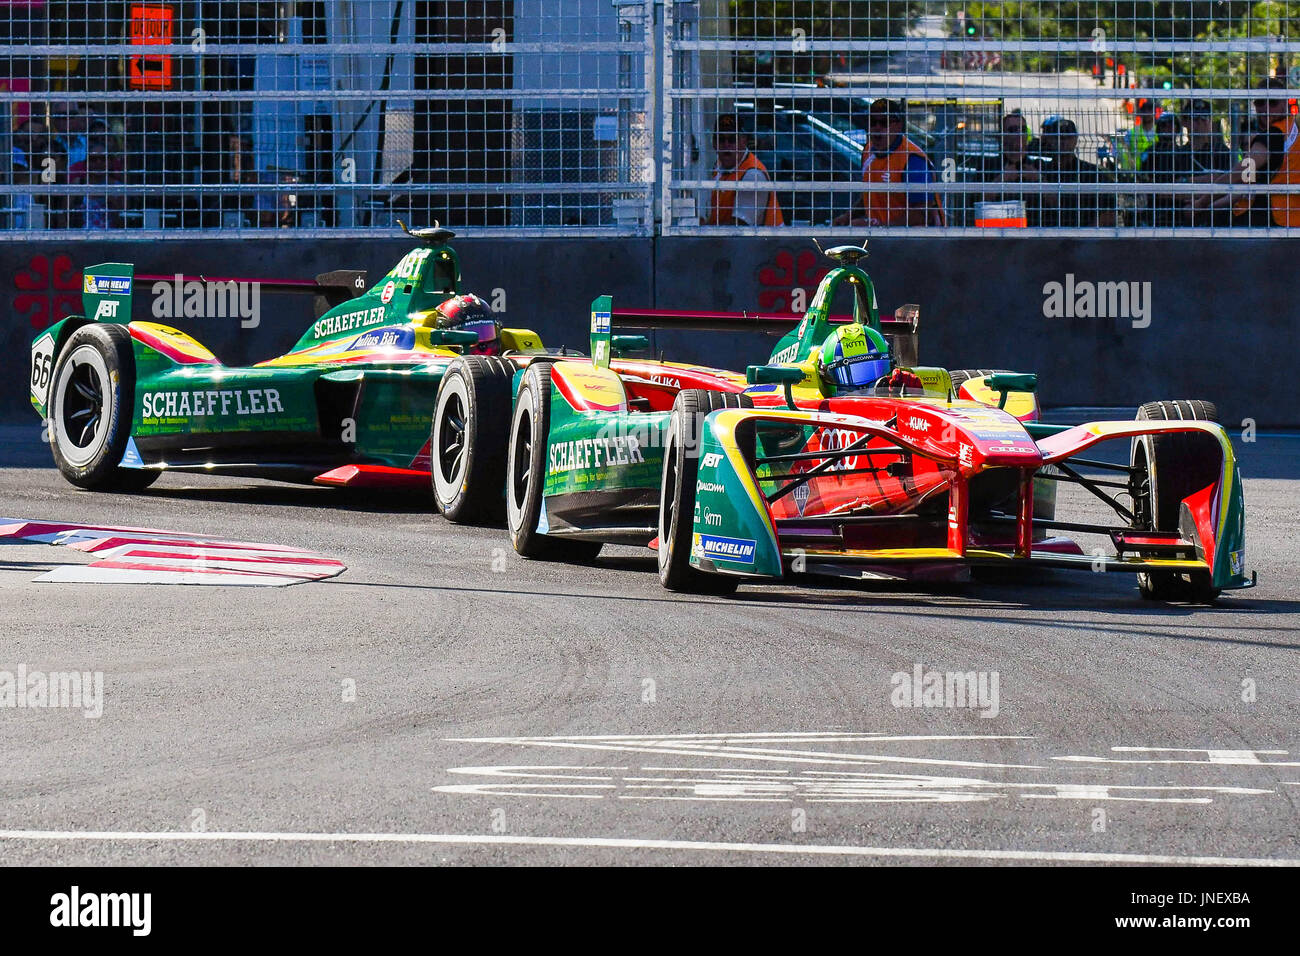 Montreal, Canada. 30th July, 2017. ABT Schaeffler Audi Sport Pilot Lucas Di  Grassi (11) Followed By ABT Schaeffler Audi Sport Pilot Daniel Abt (66)  During ...